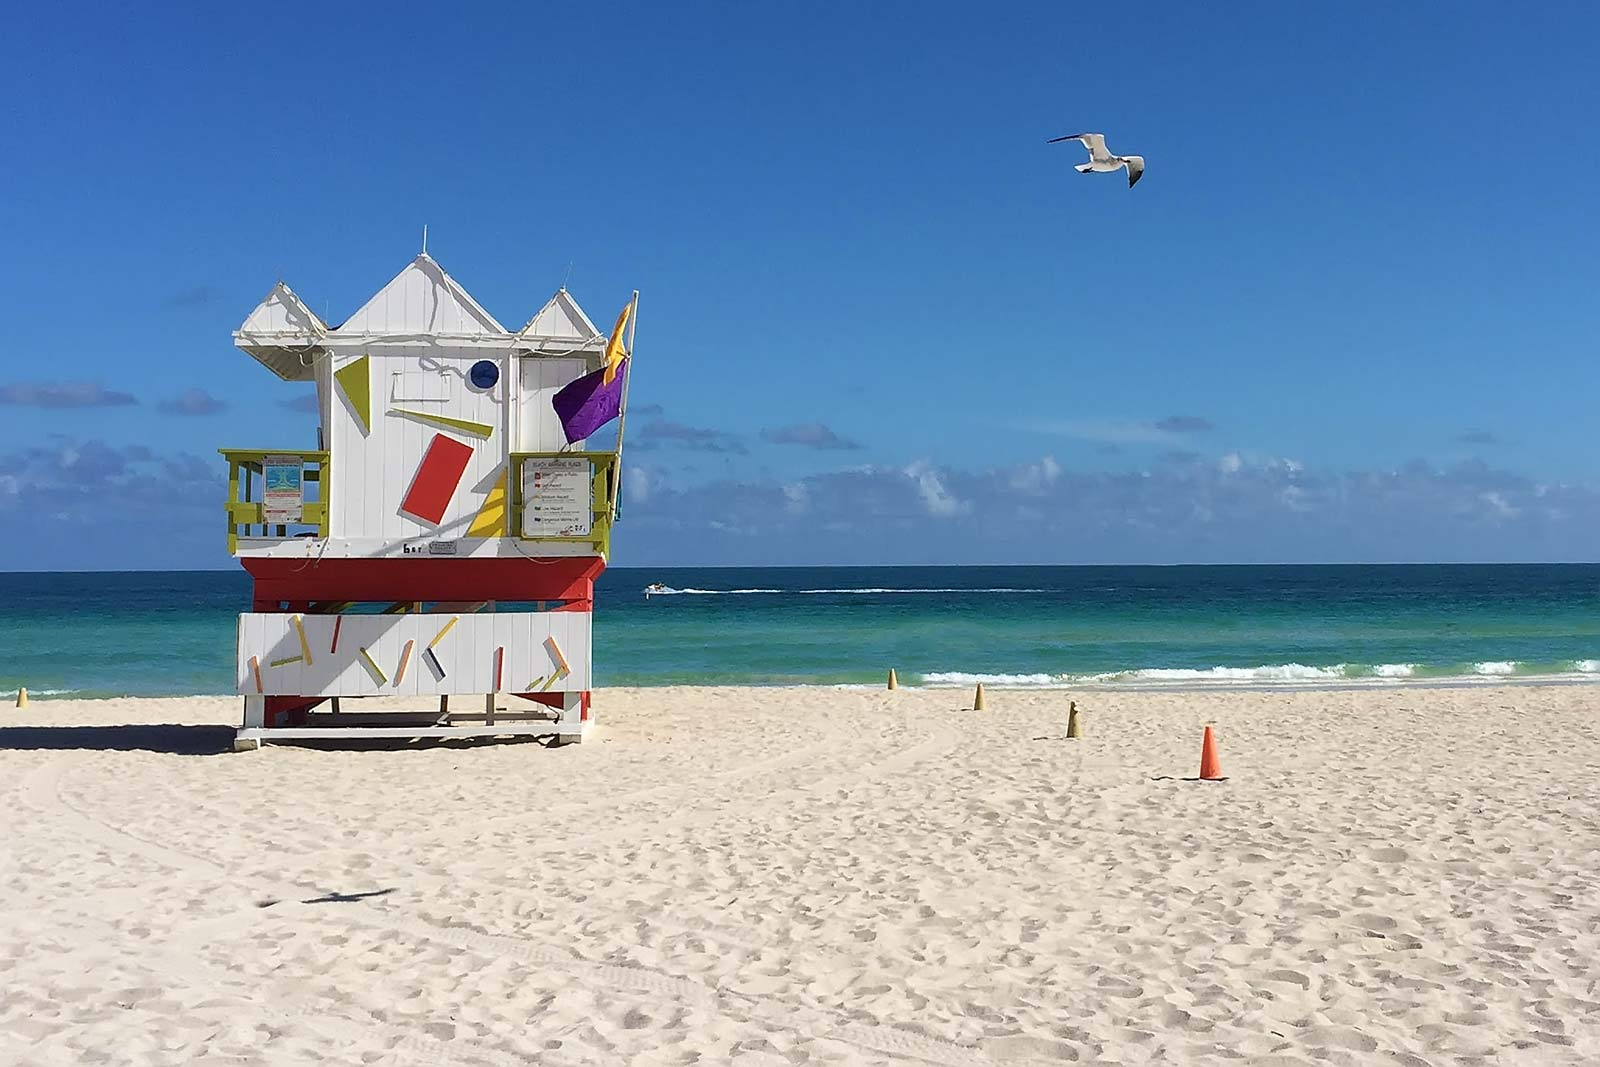 The lifeguard towers along Miami Beach are famous and deserve the attention.